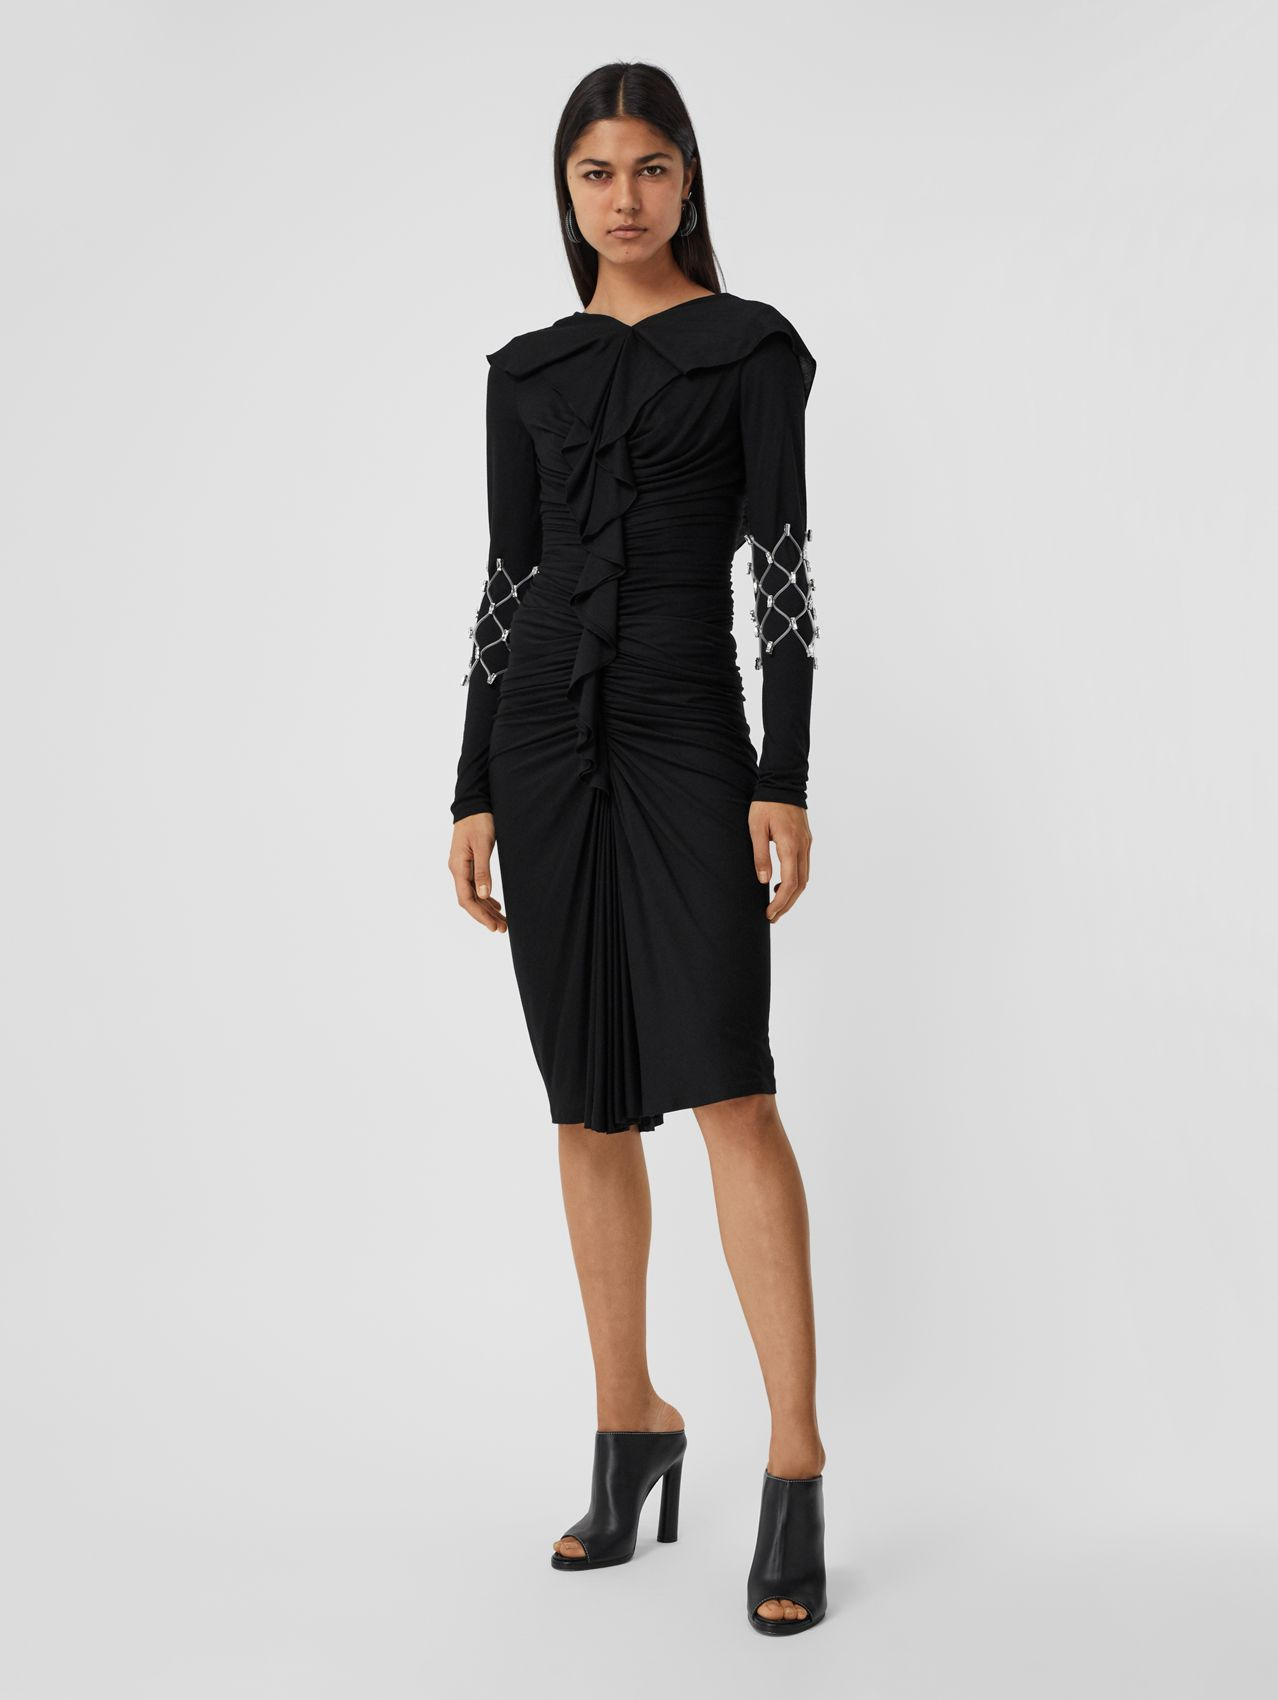 Ruffle Detail Silk Jersey Dress in Black